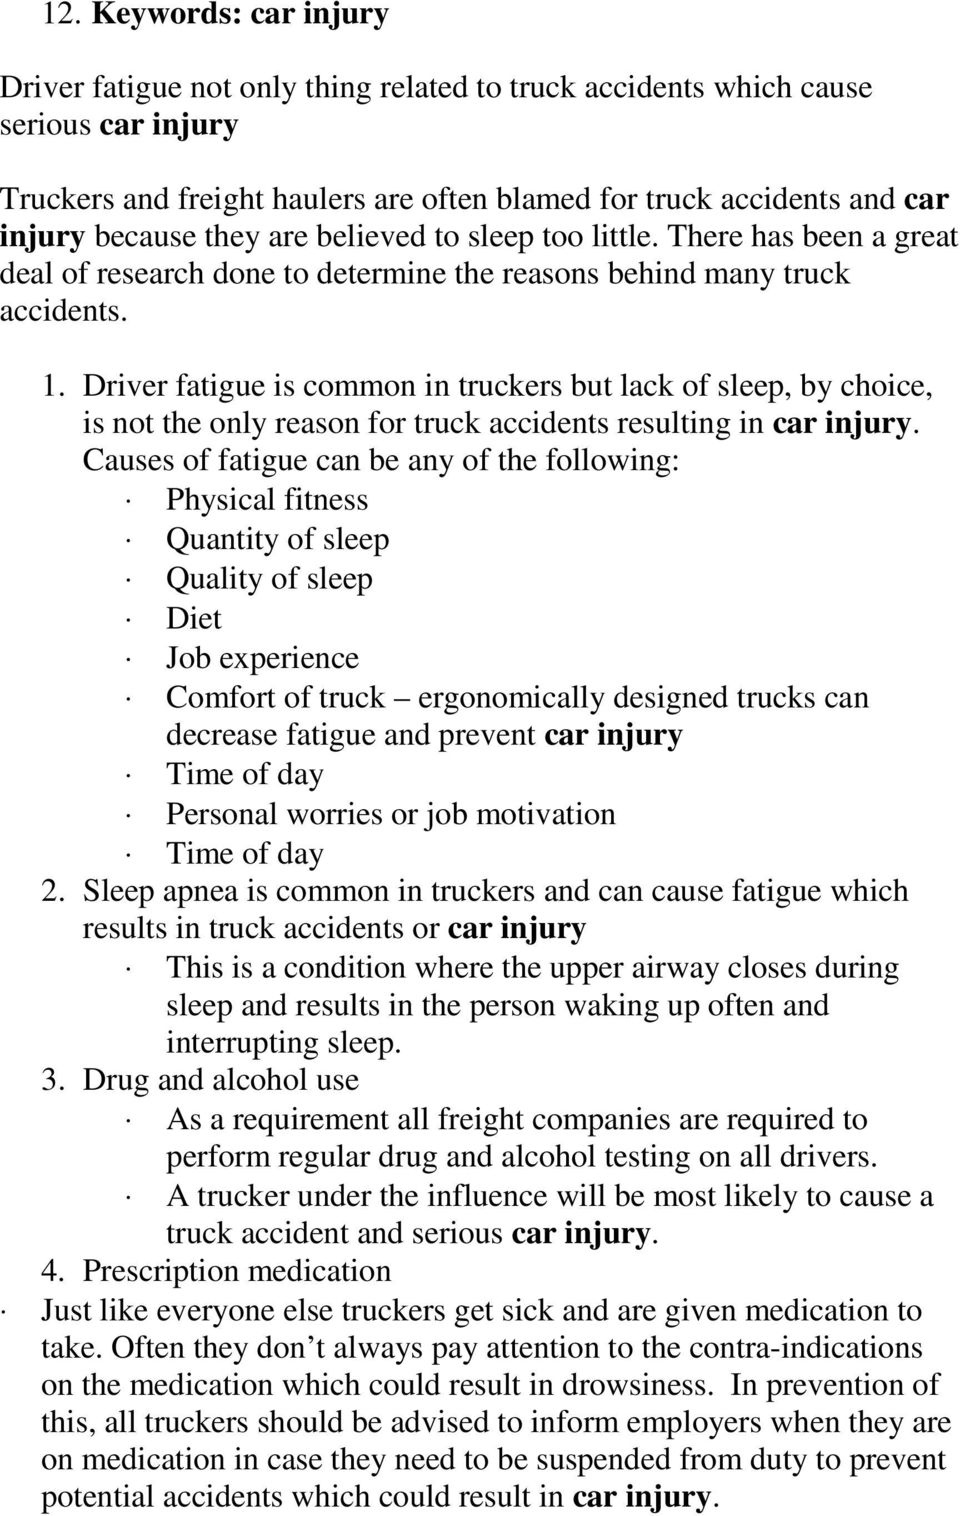 Driver fatigue is common in truckers but lack of sleep, by choice, is not the only reason for truck accidents resulting in car injury.